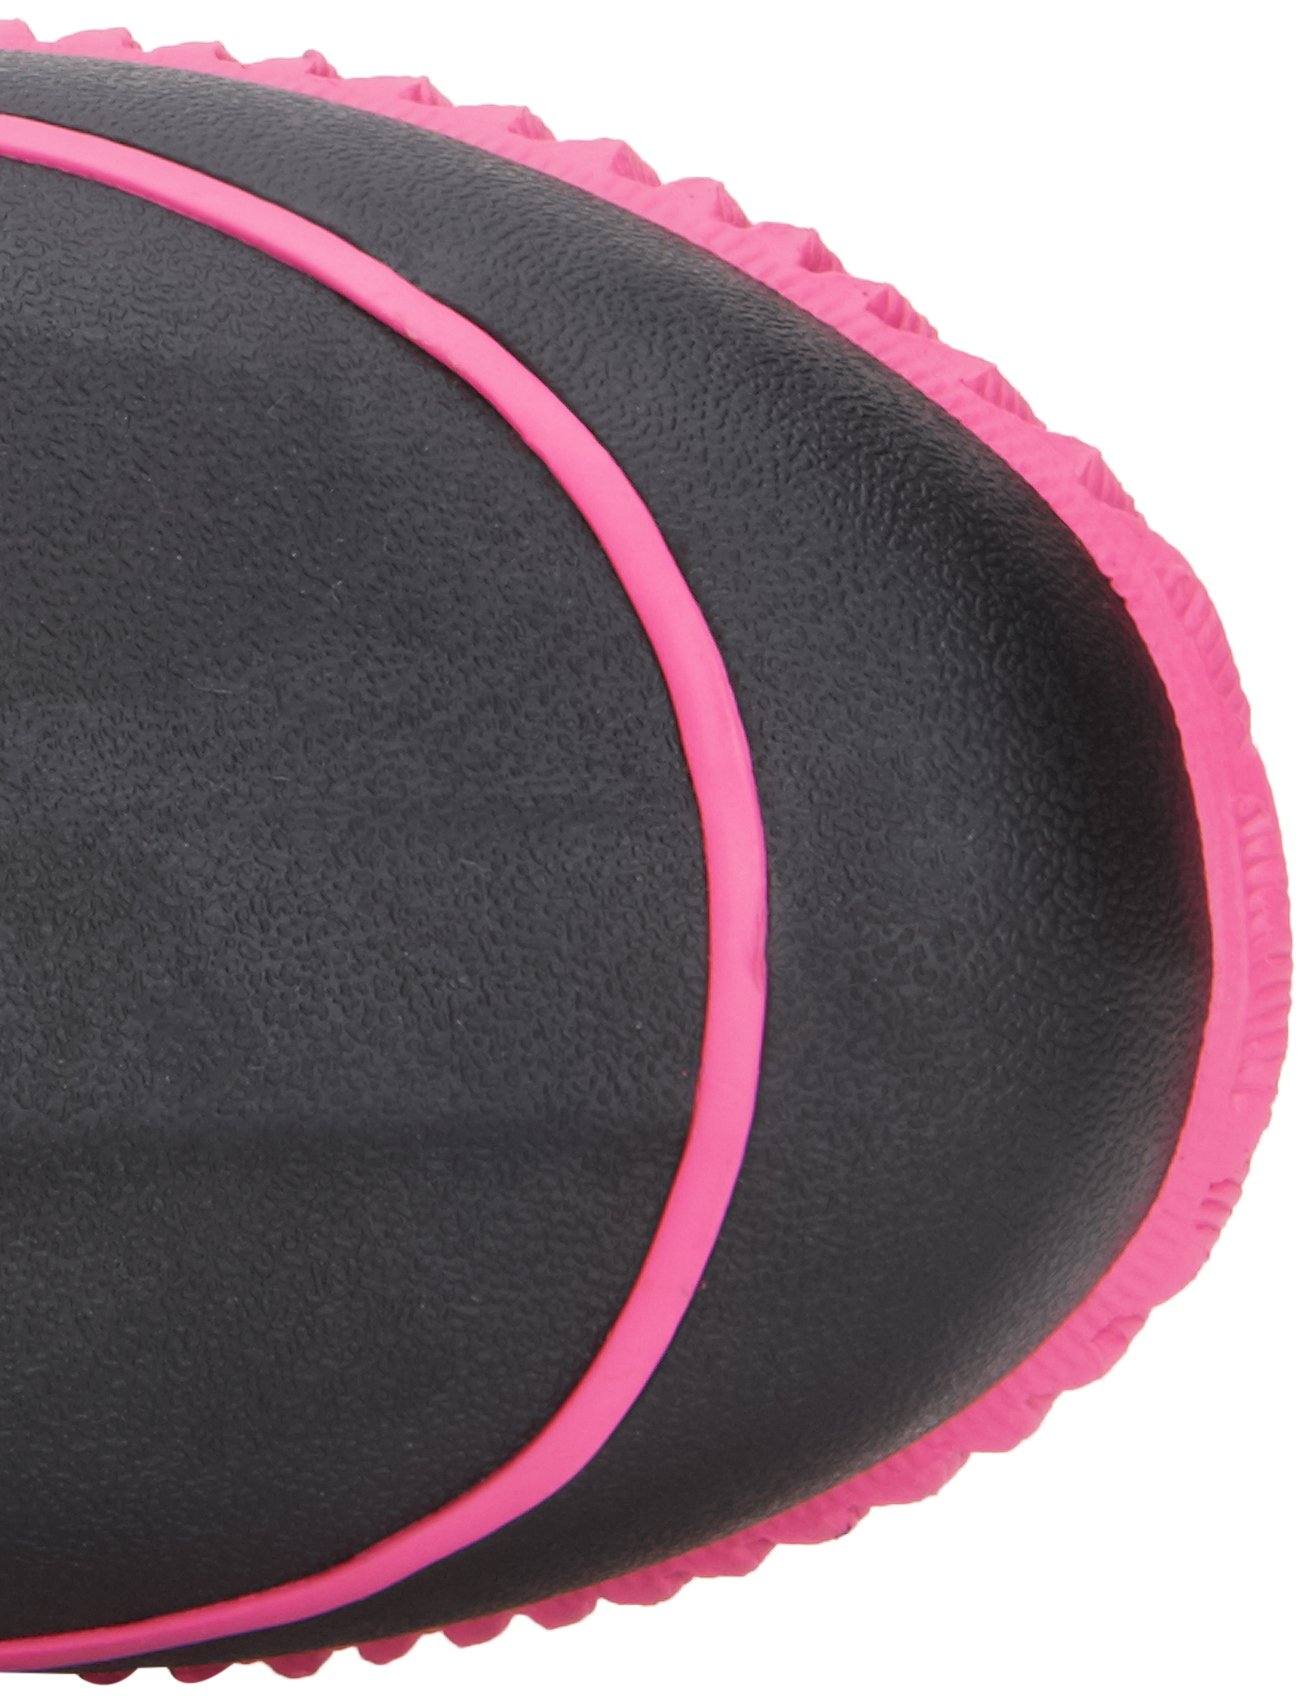 Muck Boot Women's Hale Snow Boot, Black/Hot Pink, 8 M US by Muck Boot (Image #8)